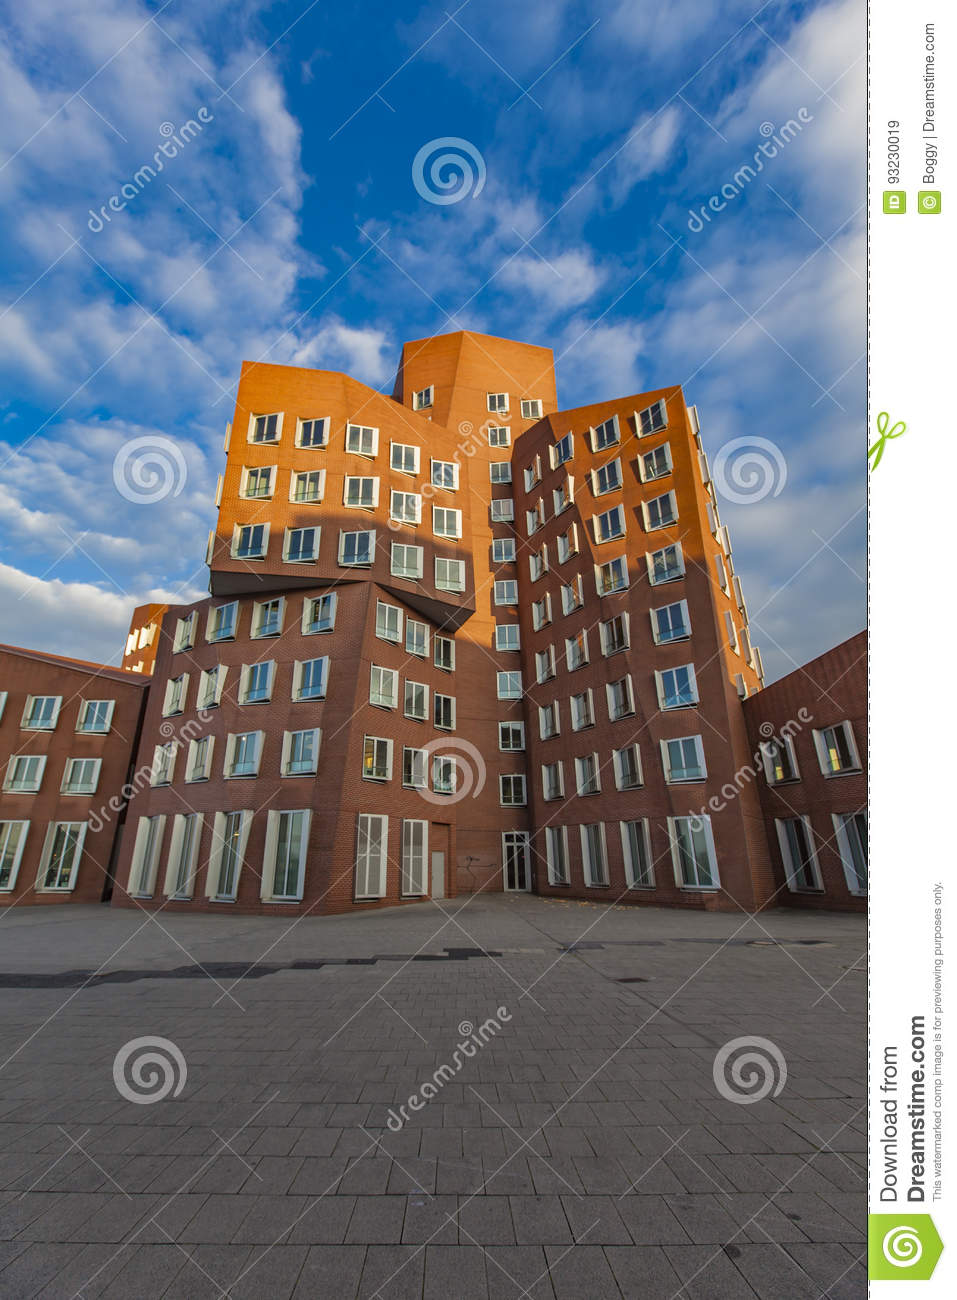 Postmodern architecture gehry 20 Century Gehry Buildings In Duesseldord Germany The Gehry Buildings In Dusseldorf Harbor Are Wonderful Representatives Of Postmodern Architecture Caimanhaitifoundationorg Gehry Buildings Of Dusseldorf Harbor Editorial Stock Image Image